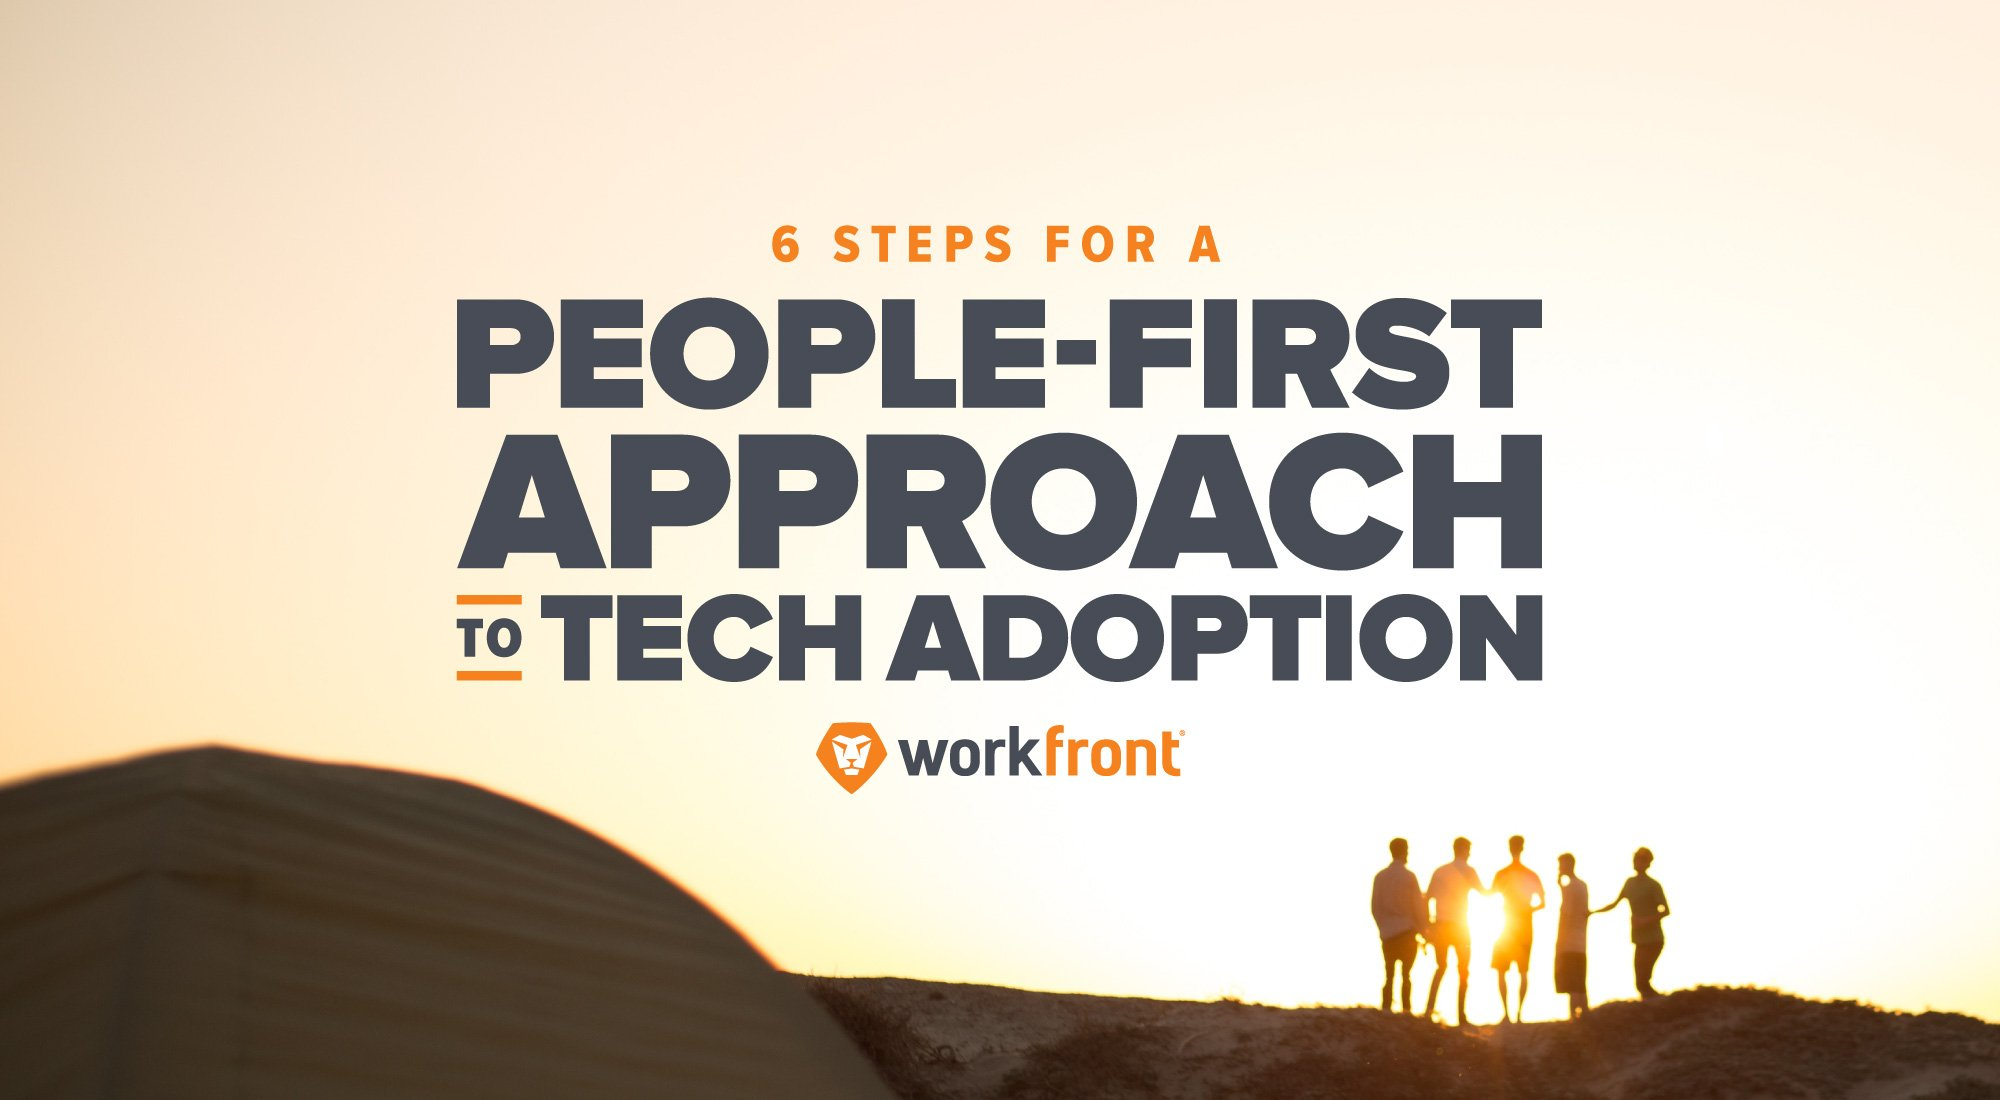 6 Steps for a People-First Approach to Tech Adoption